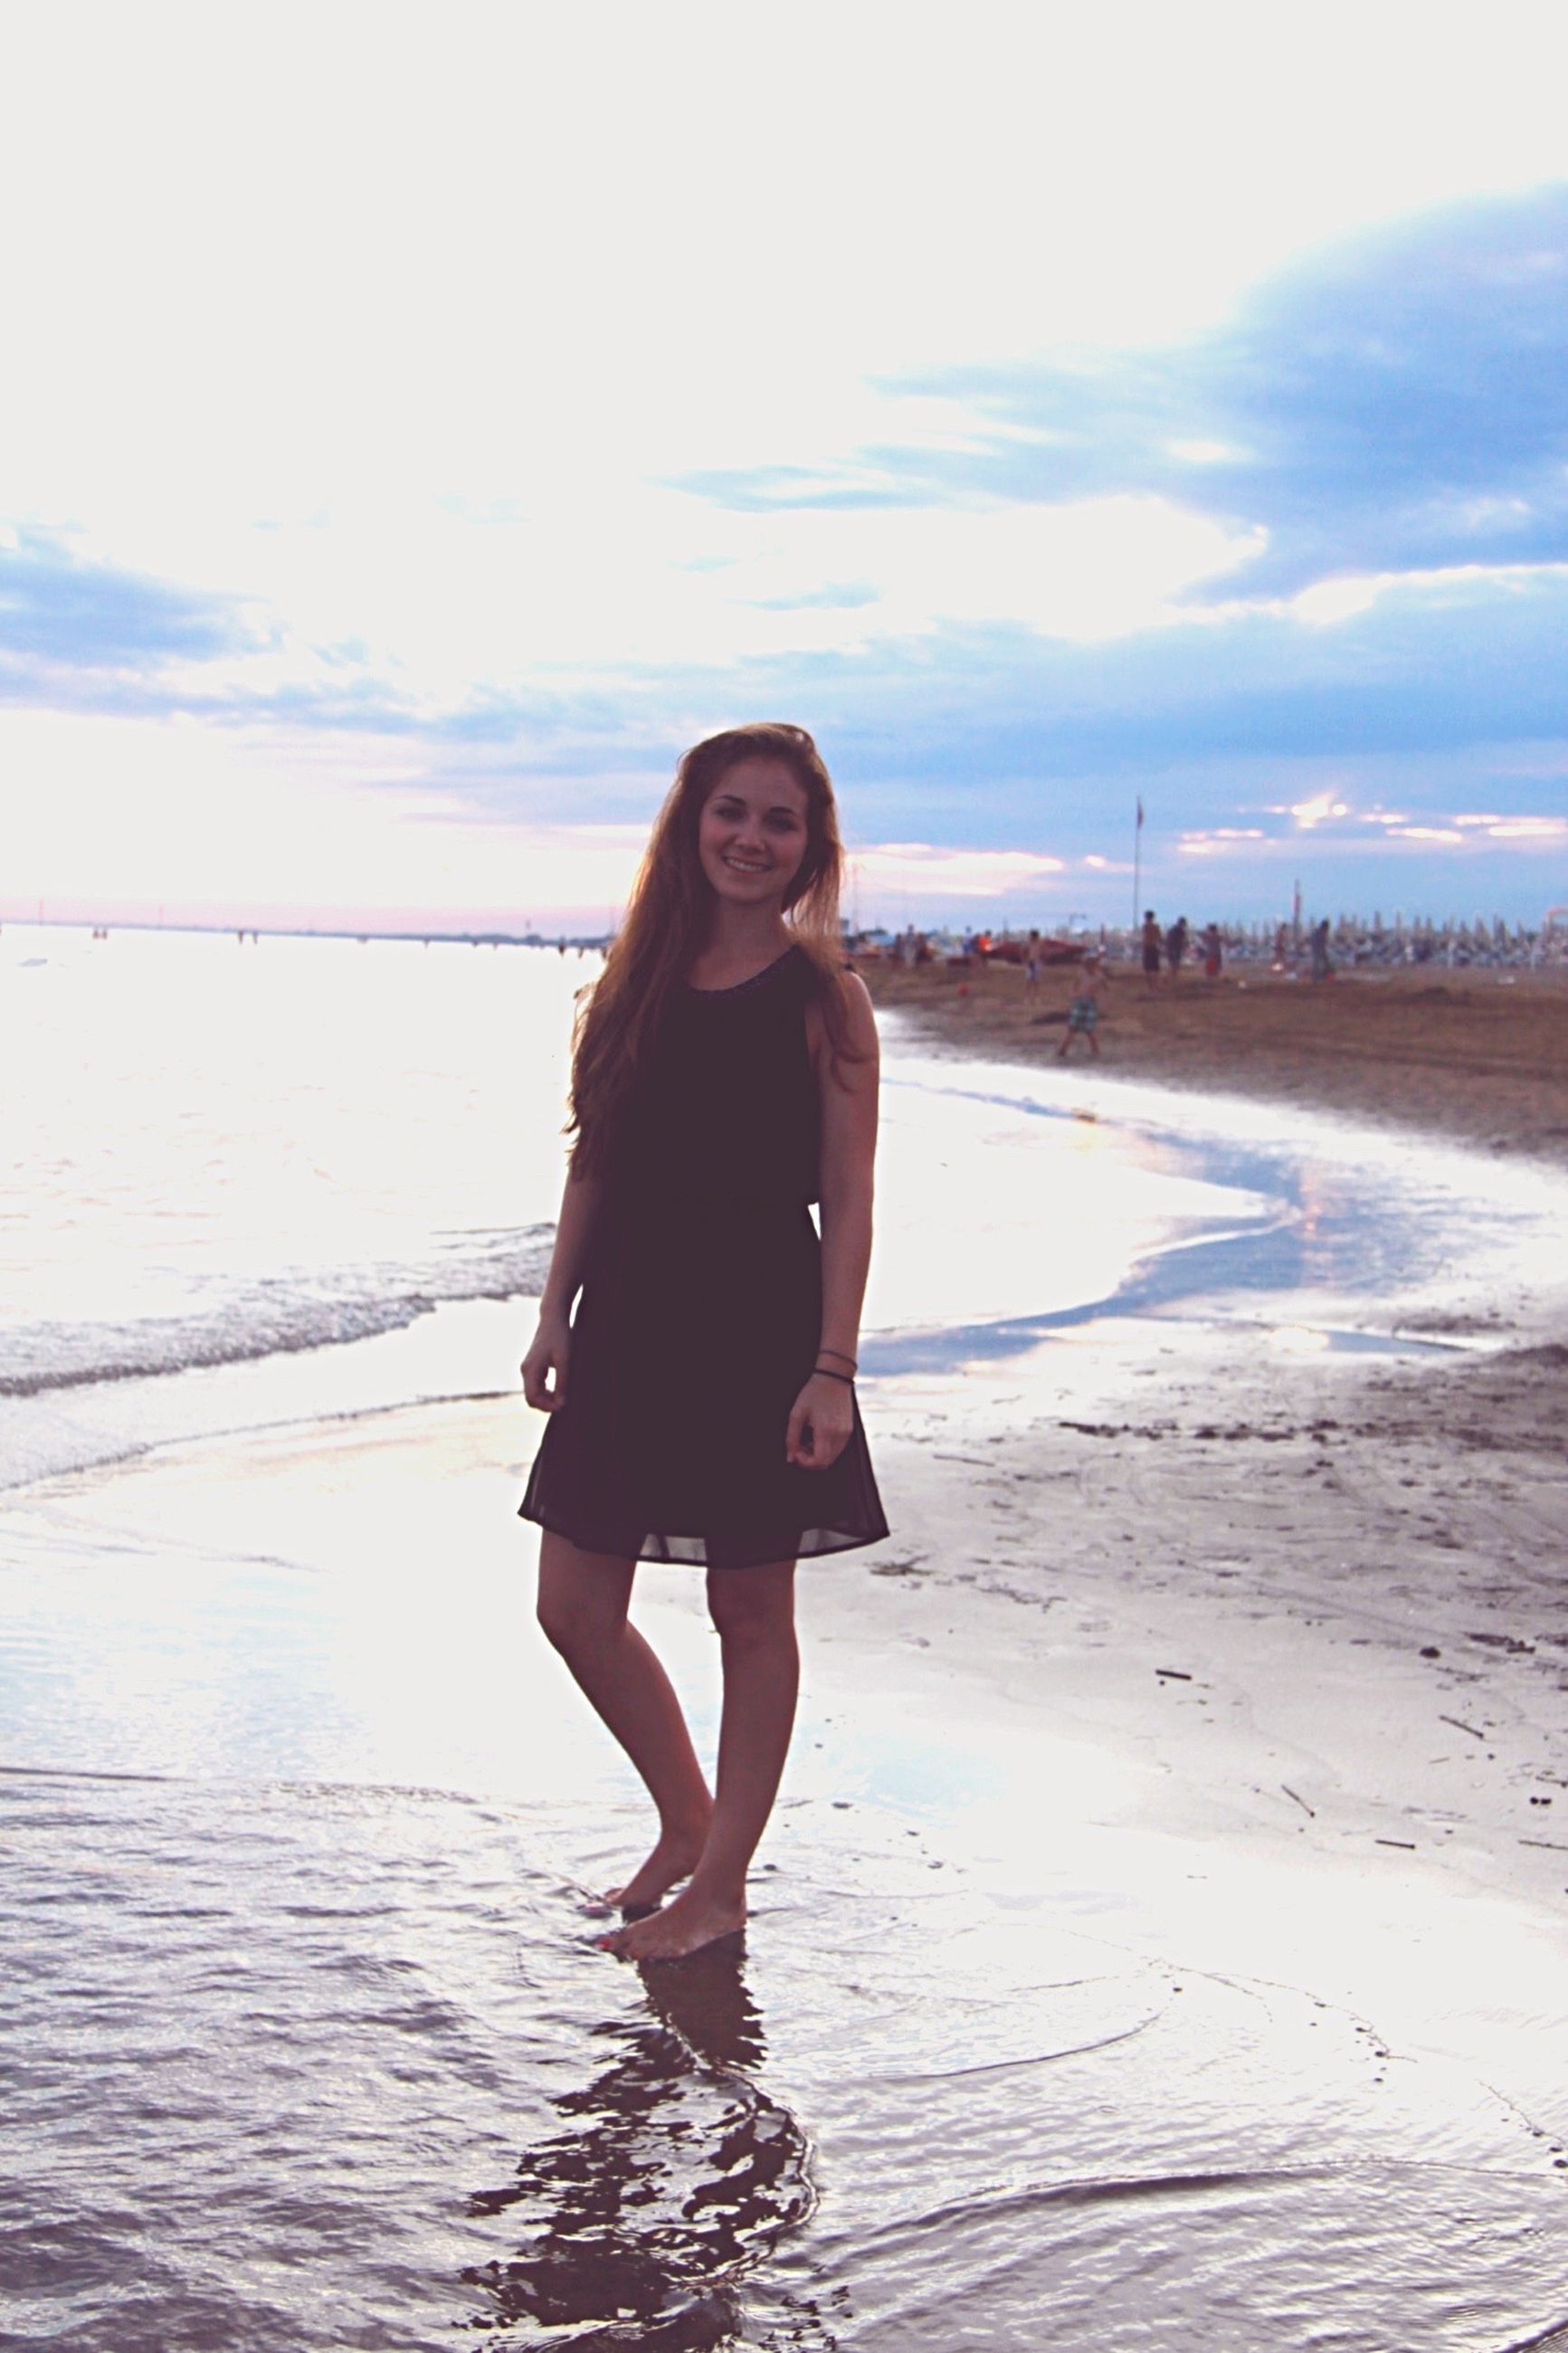 young adult, beach, person, lifestyles, young women, water, leisure activity, looking at camera, portrait, sea, full length, standing, front view, casual clothing, sky, shore, sand, long hair